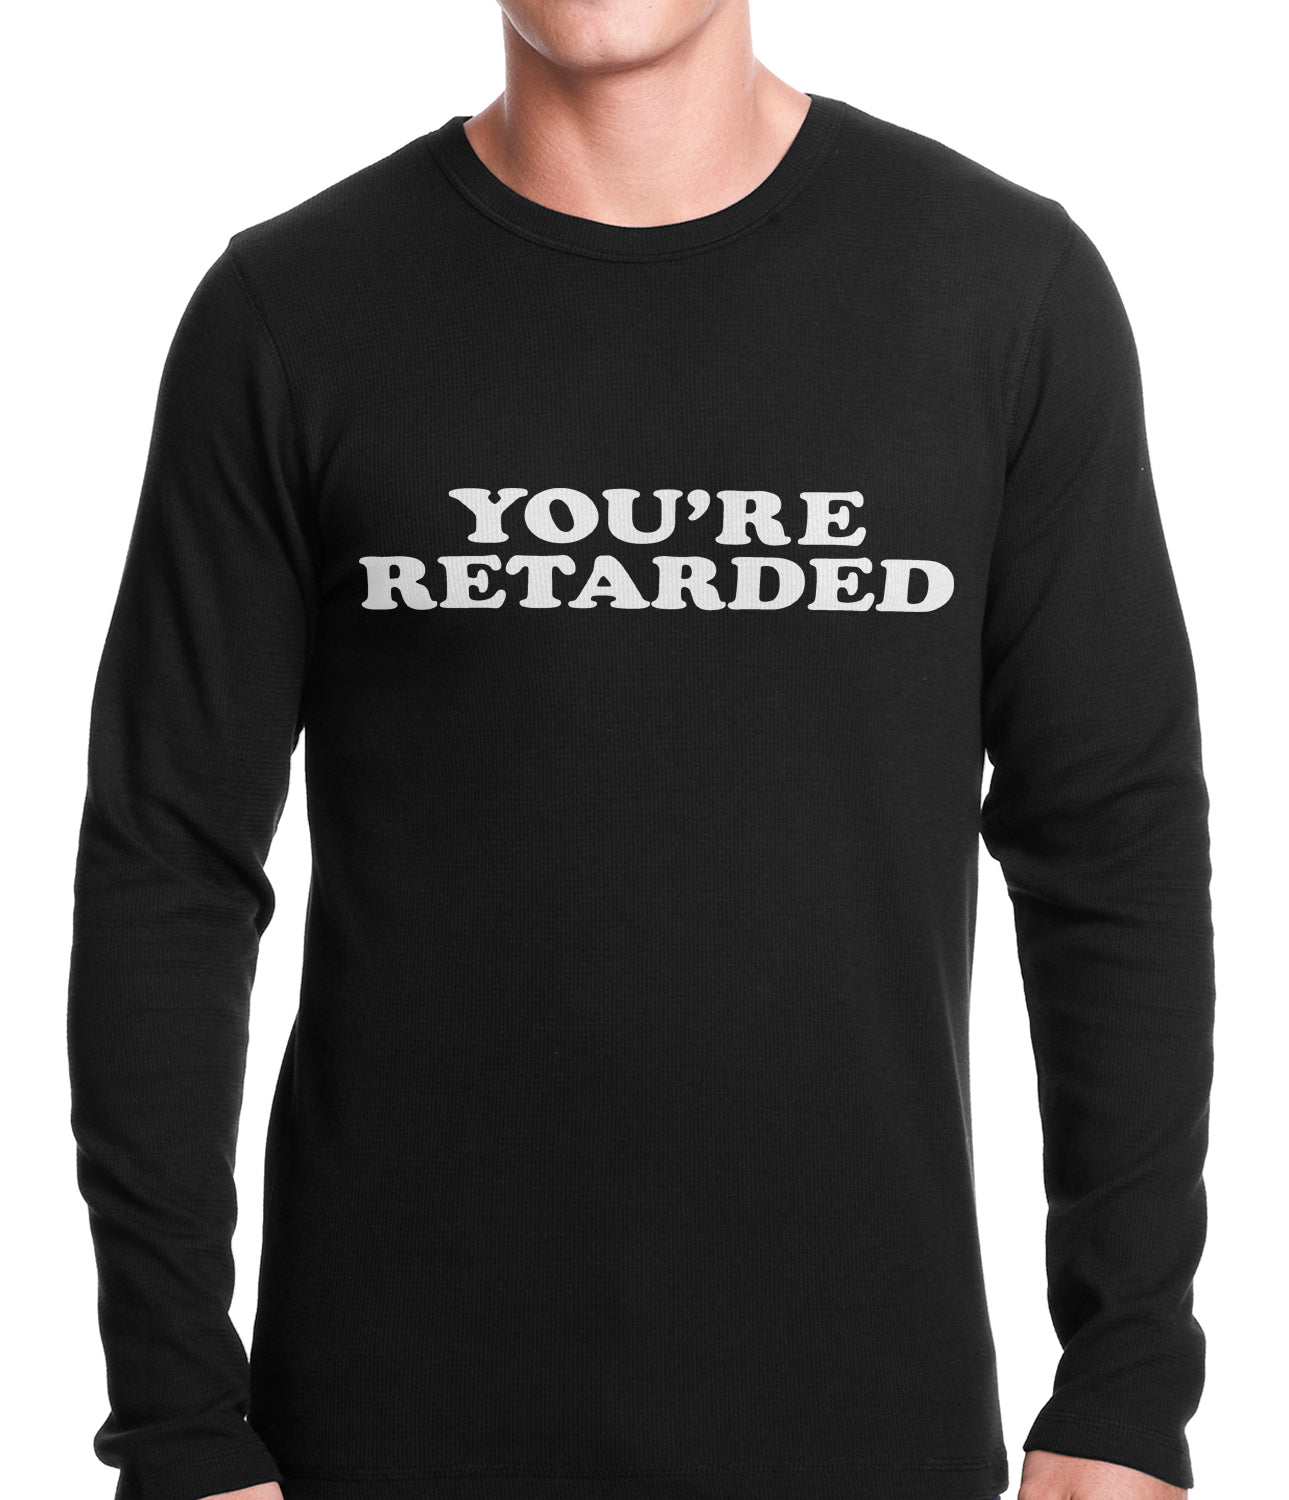 Funny You're Retarded Humorous Thermal Shirt